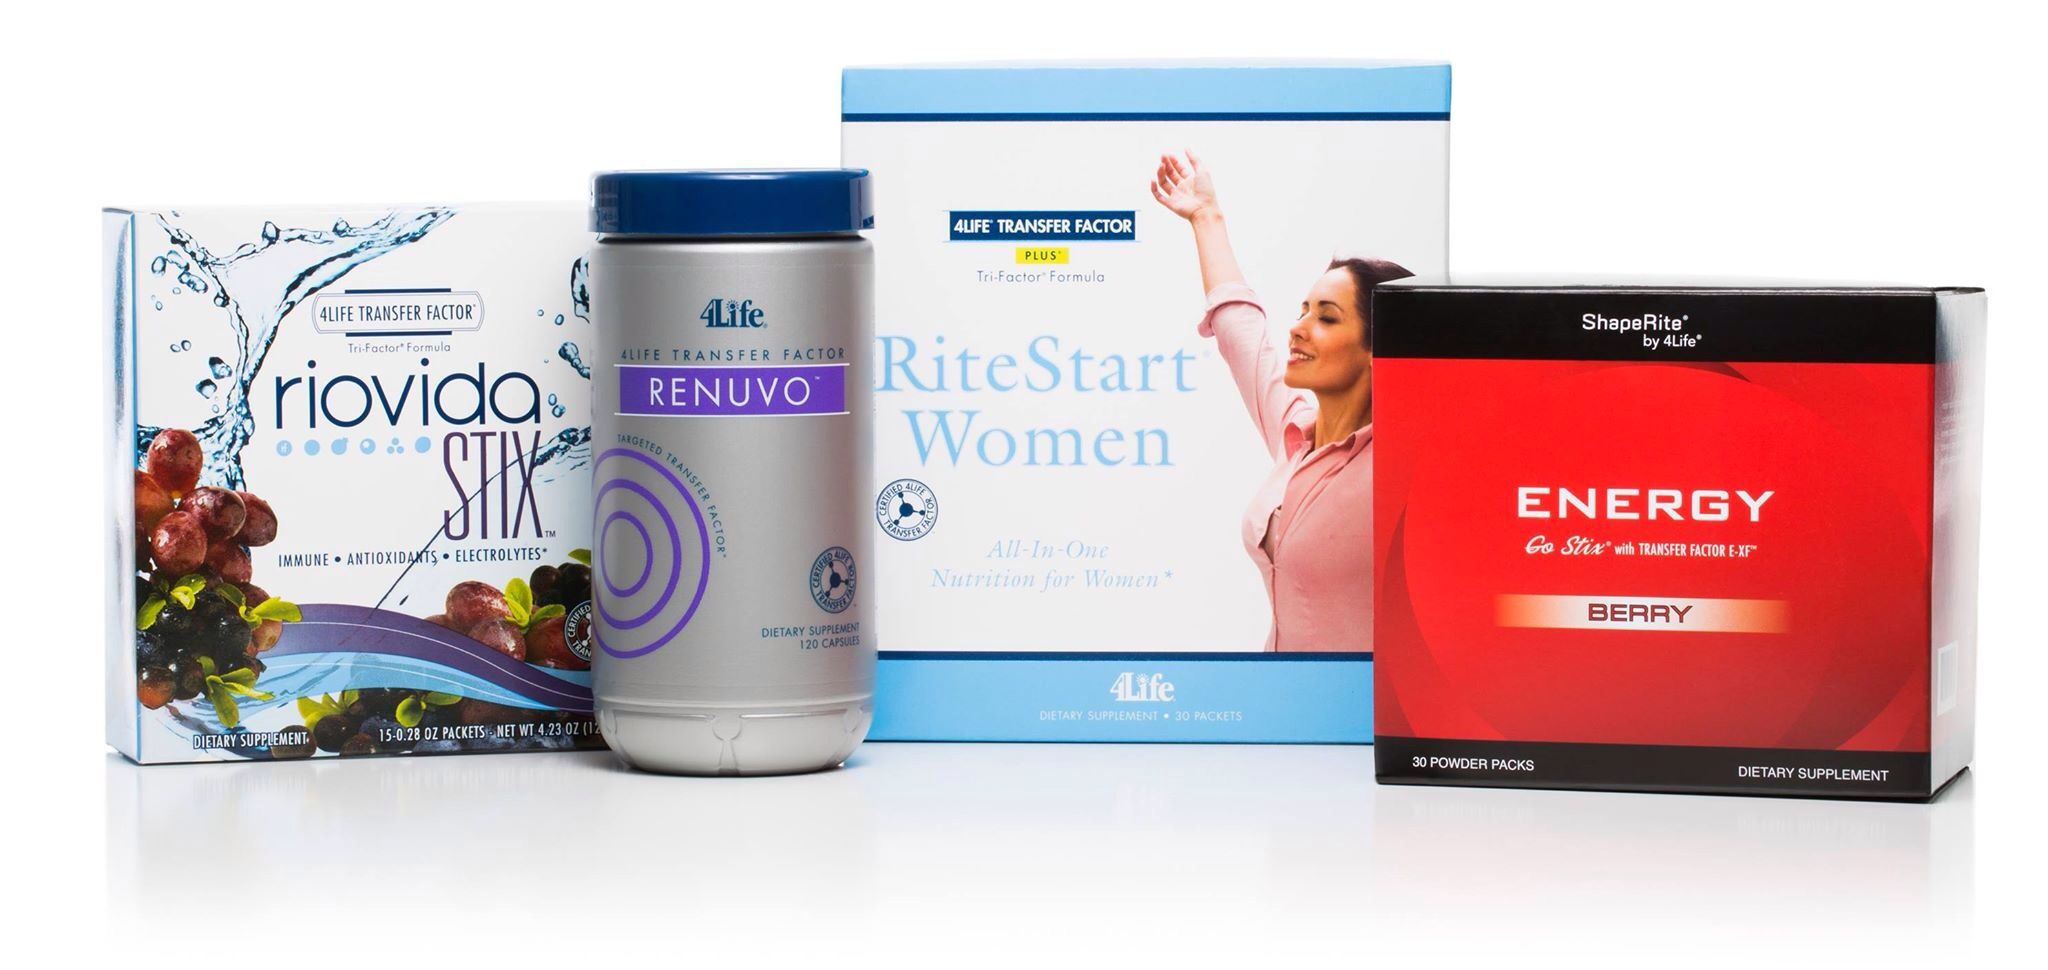 4life Riovida Stix Tf Renuvo Ritestart Women Energy Transfer Factor Advance Trifactor Tri Formula Healthy Life